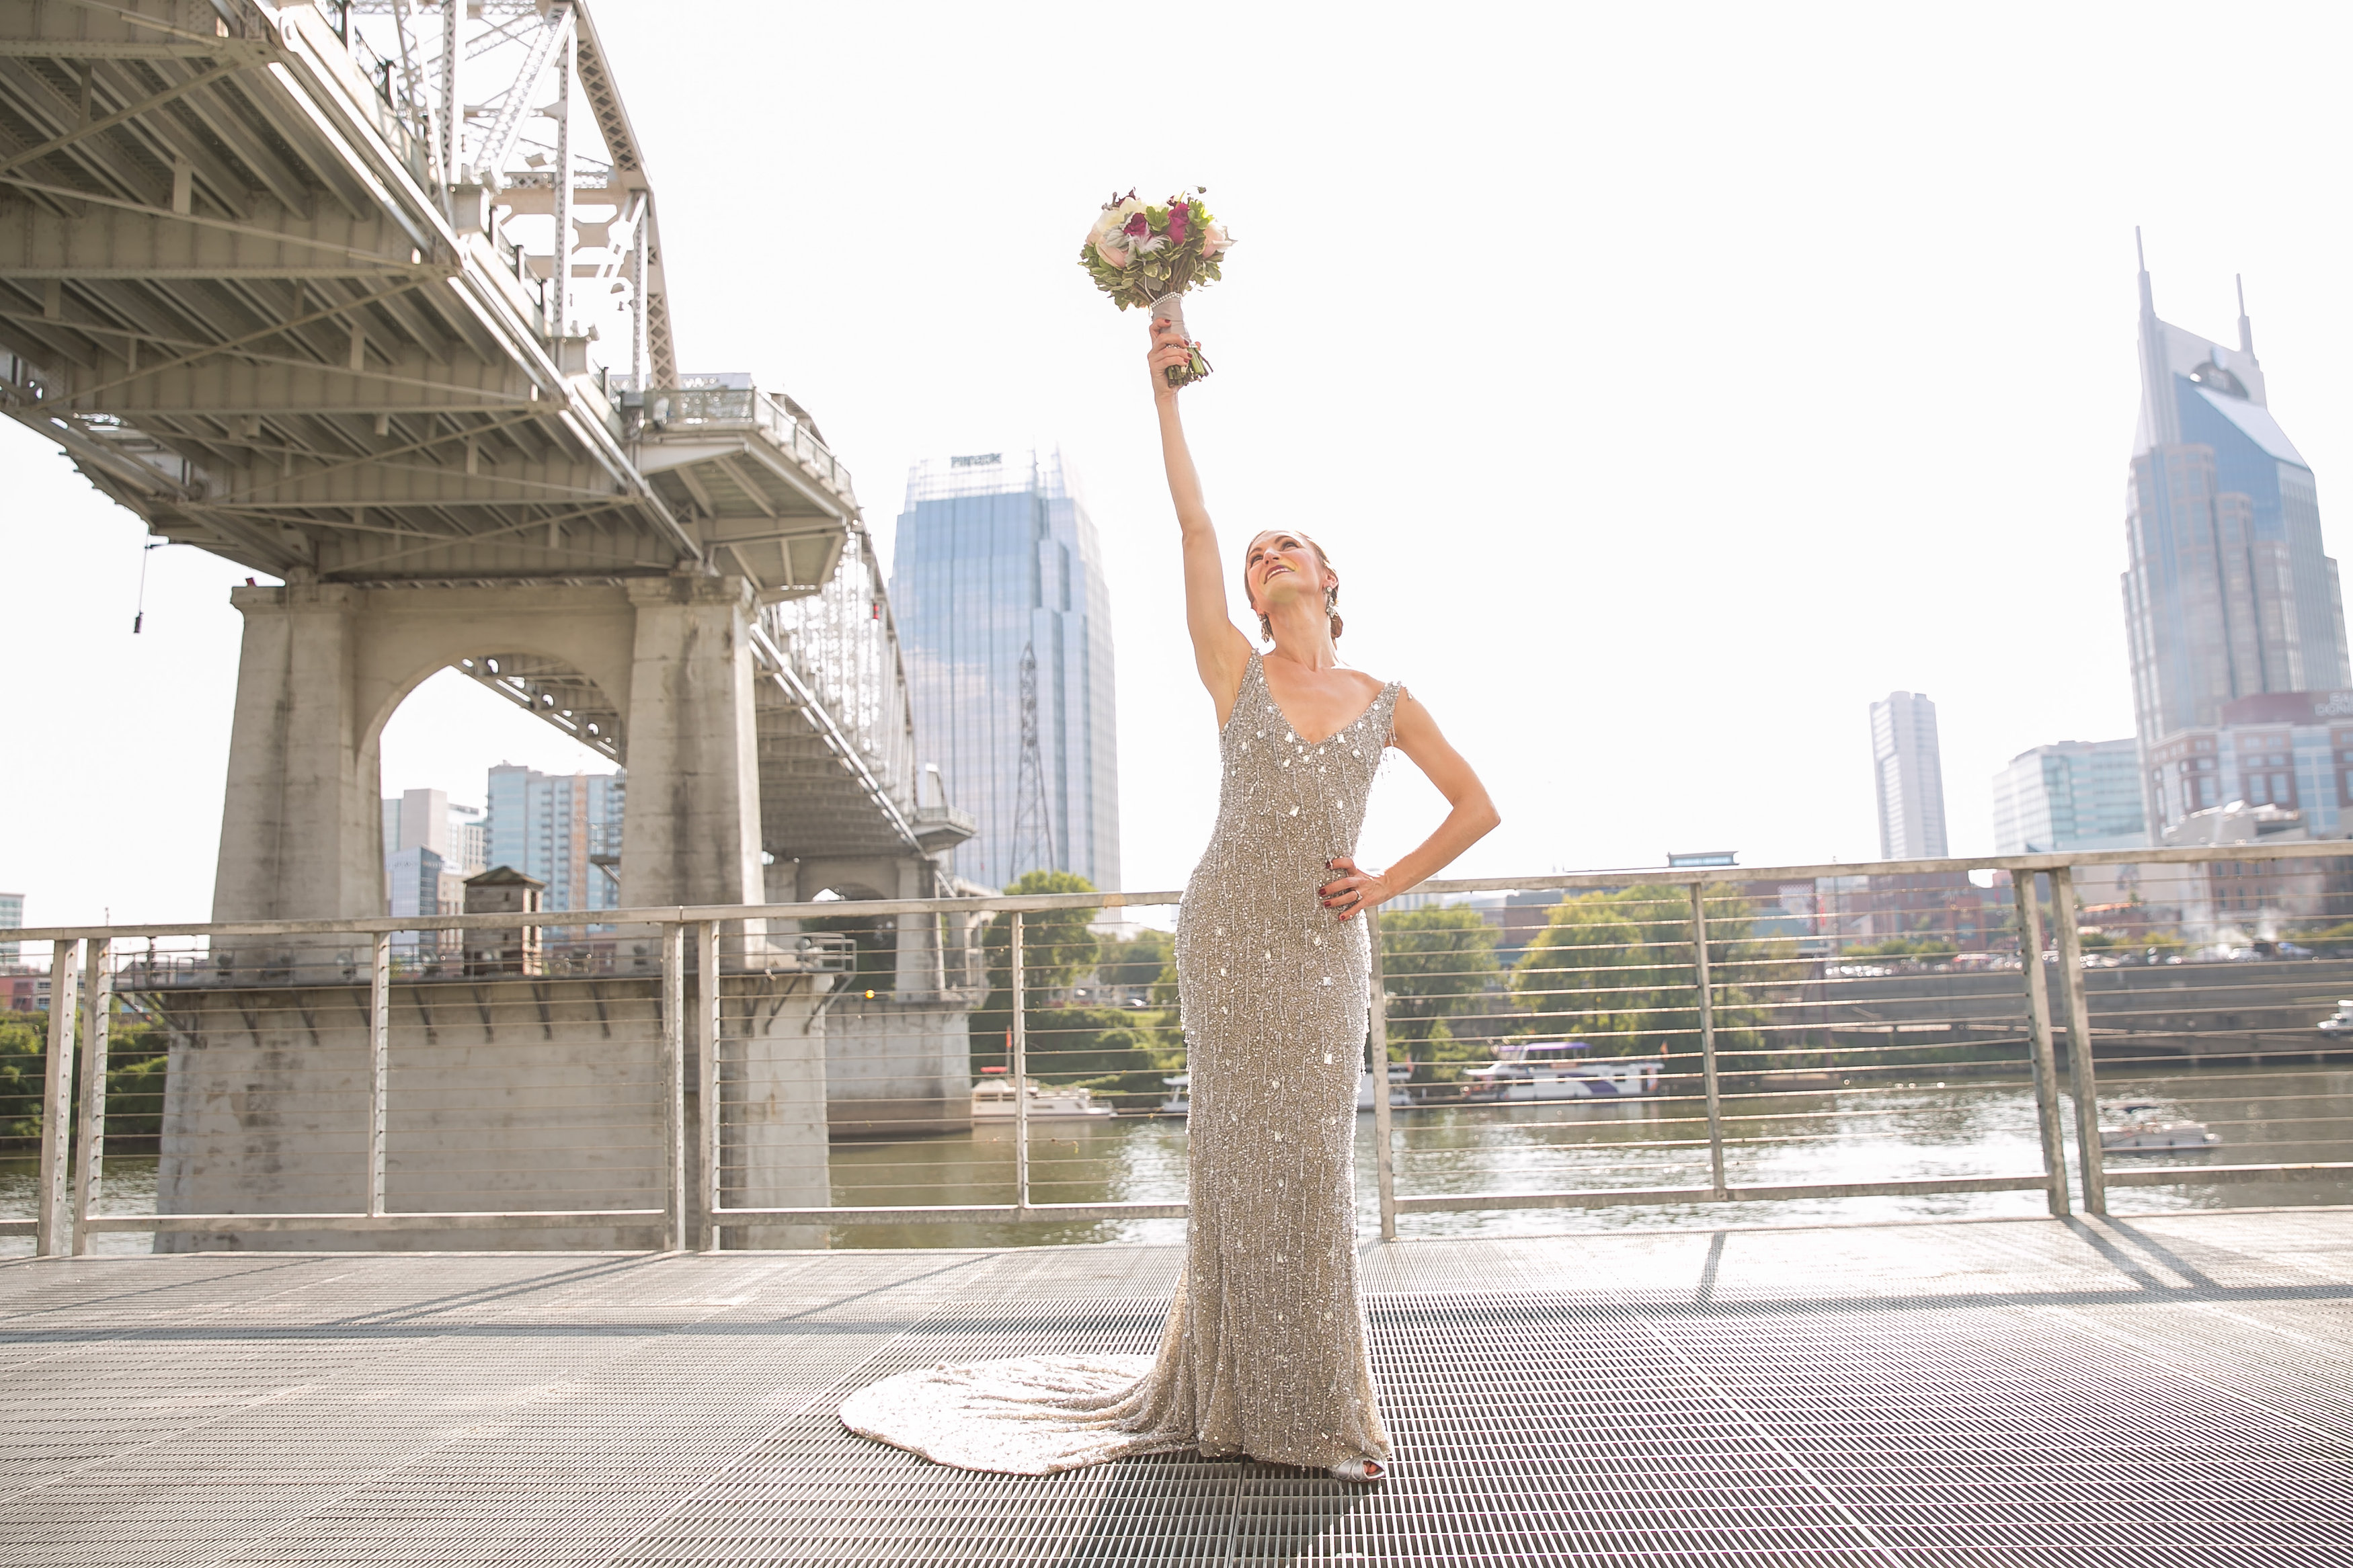 silver-sparkle-jewish-wedding-nashville-shehewe-photography-10